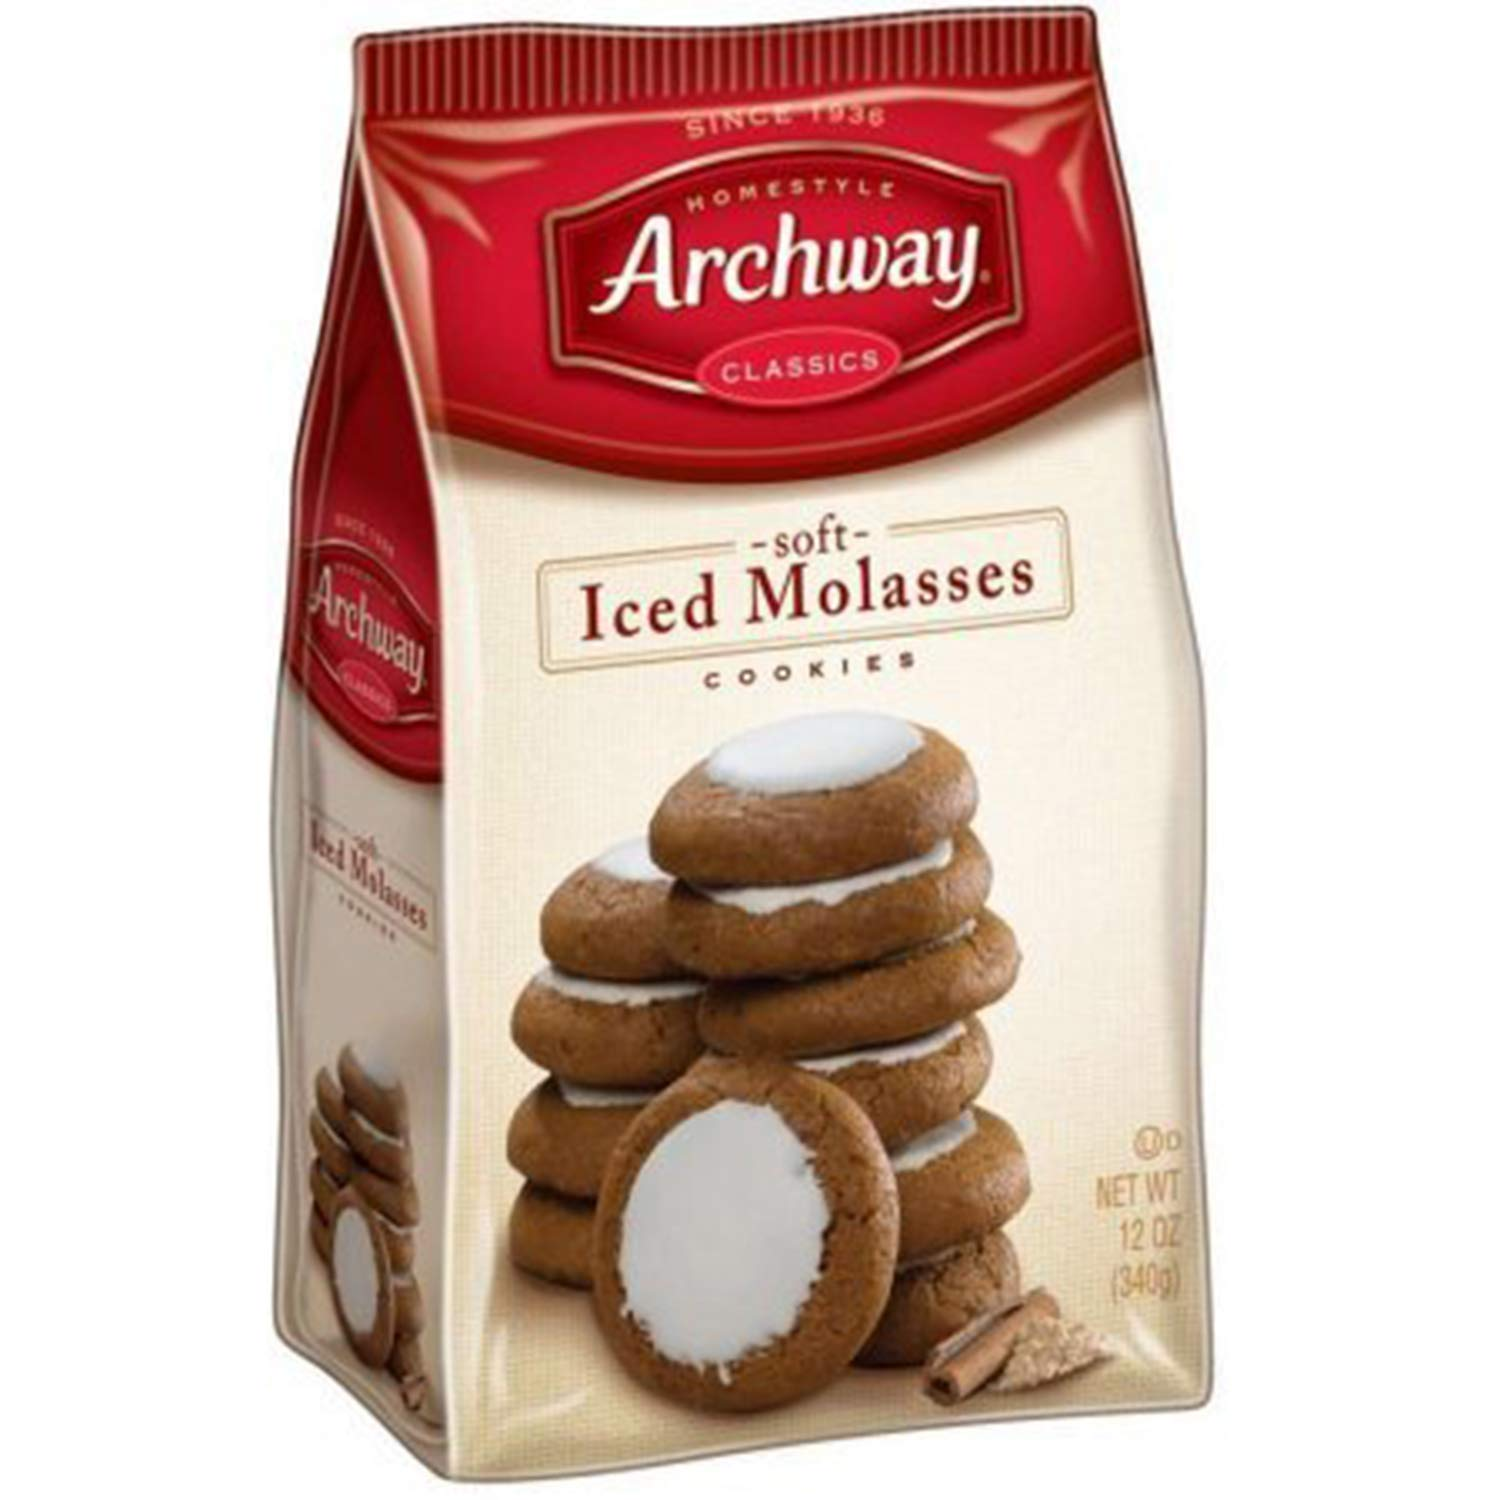 Archway Iced Molasses Cookies, 12 unidades: Amazon.com ...